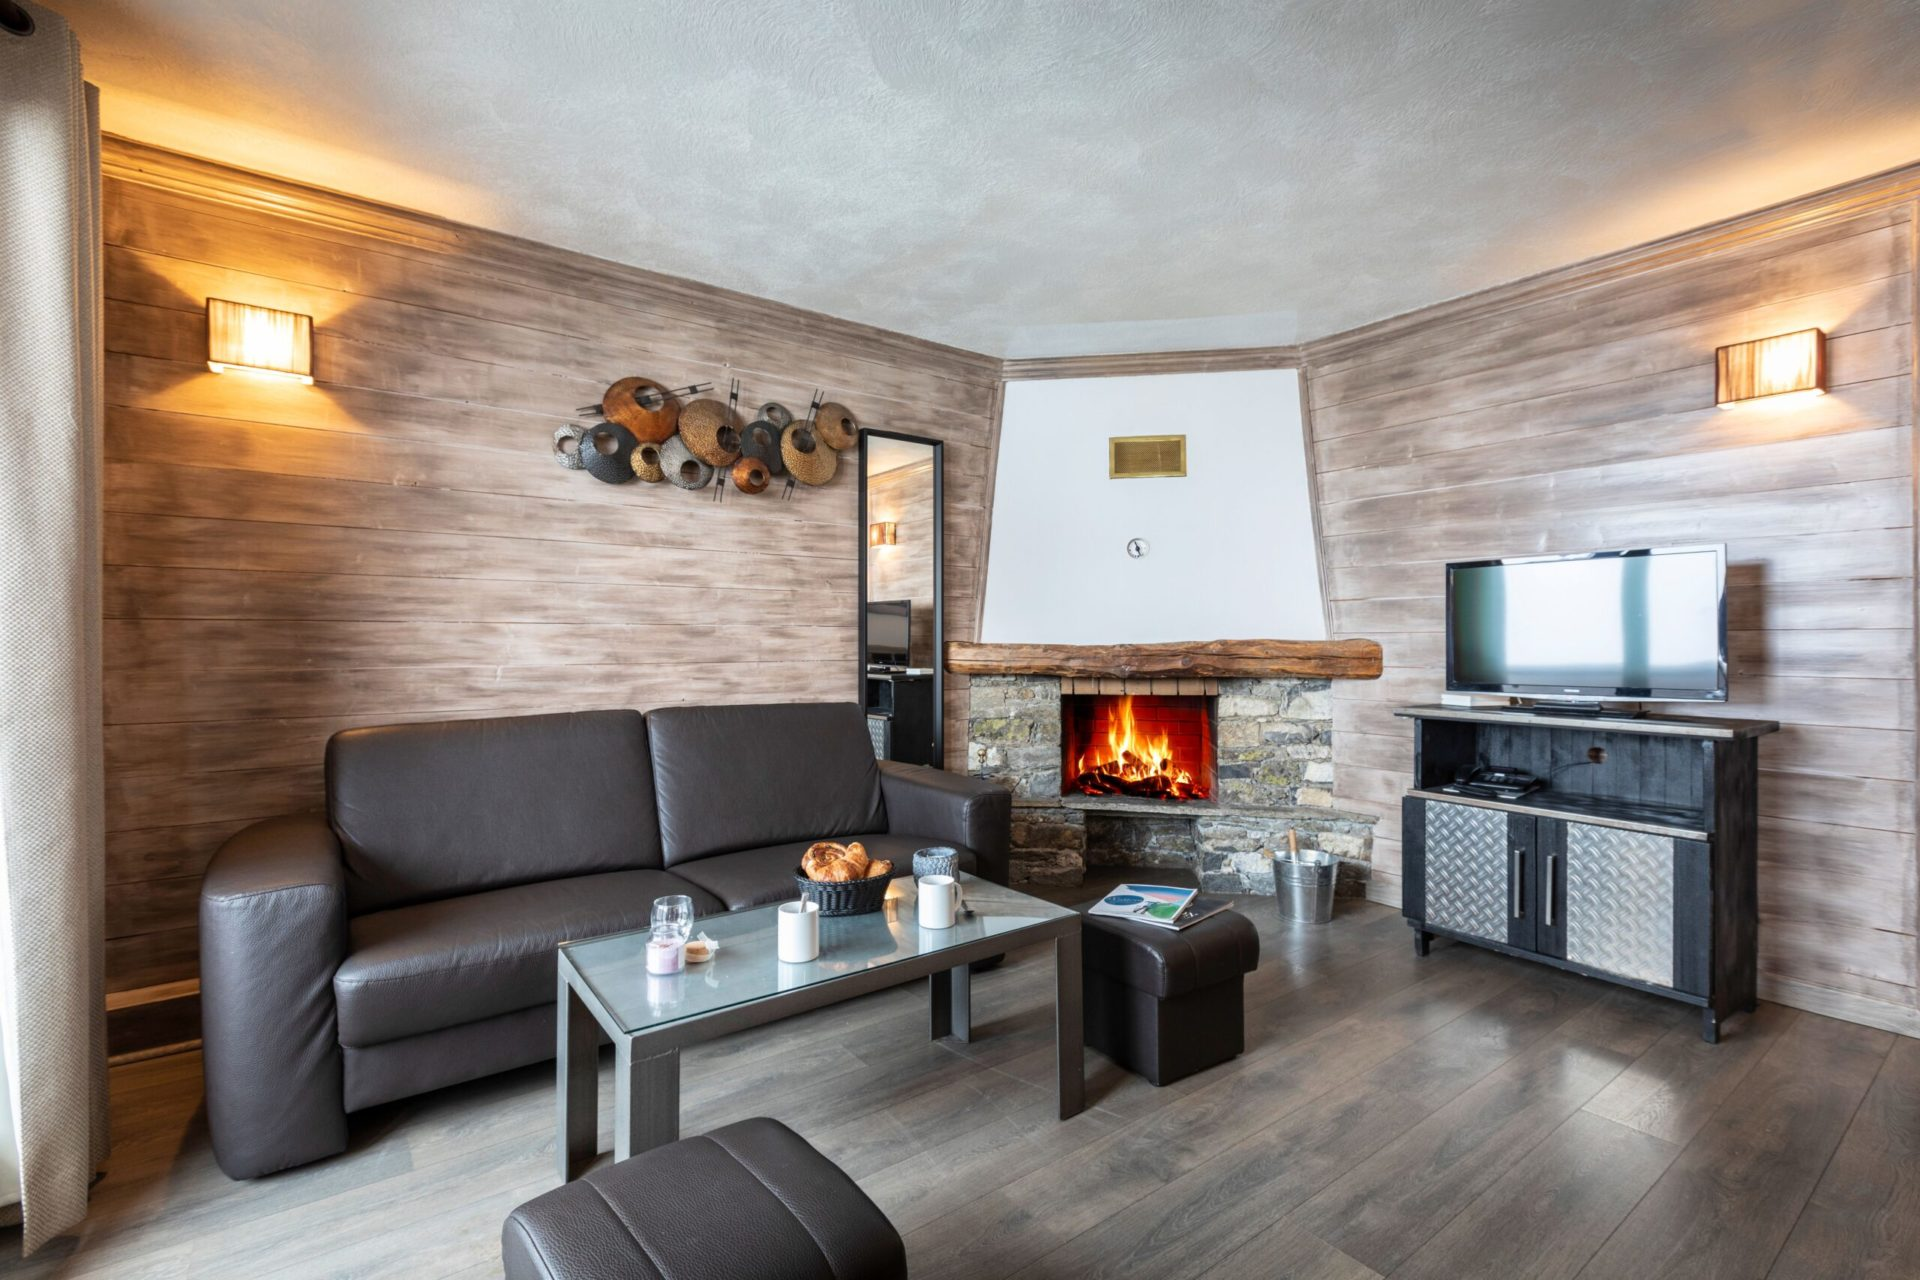 An image of the living area featuring a fire in Chalet des Neiges Residence Hermine